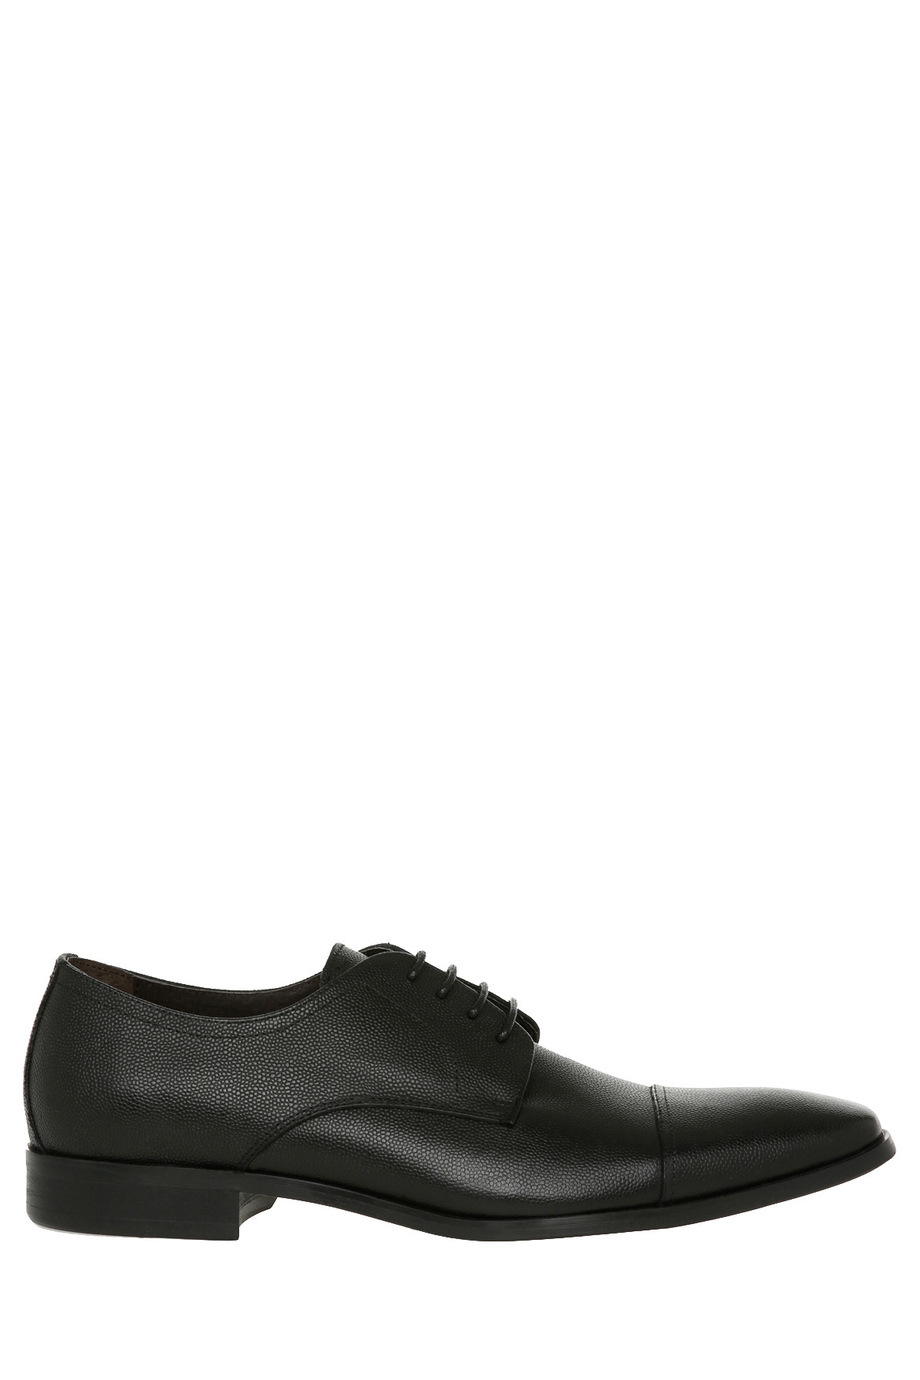 Trent Nathan Shoes Online